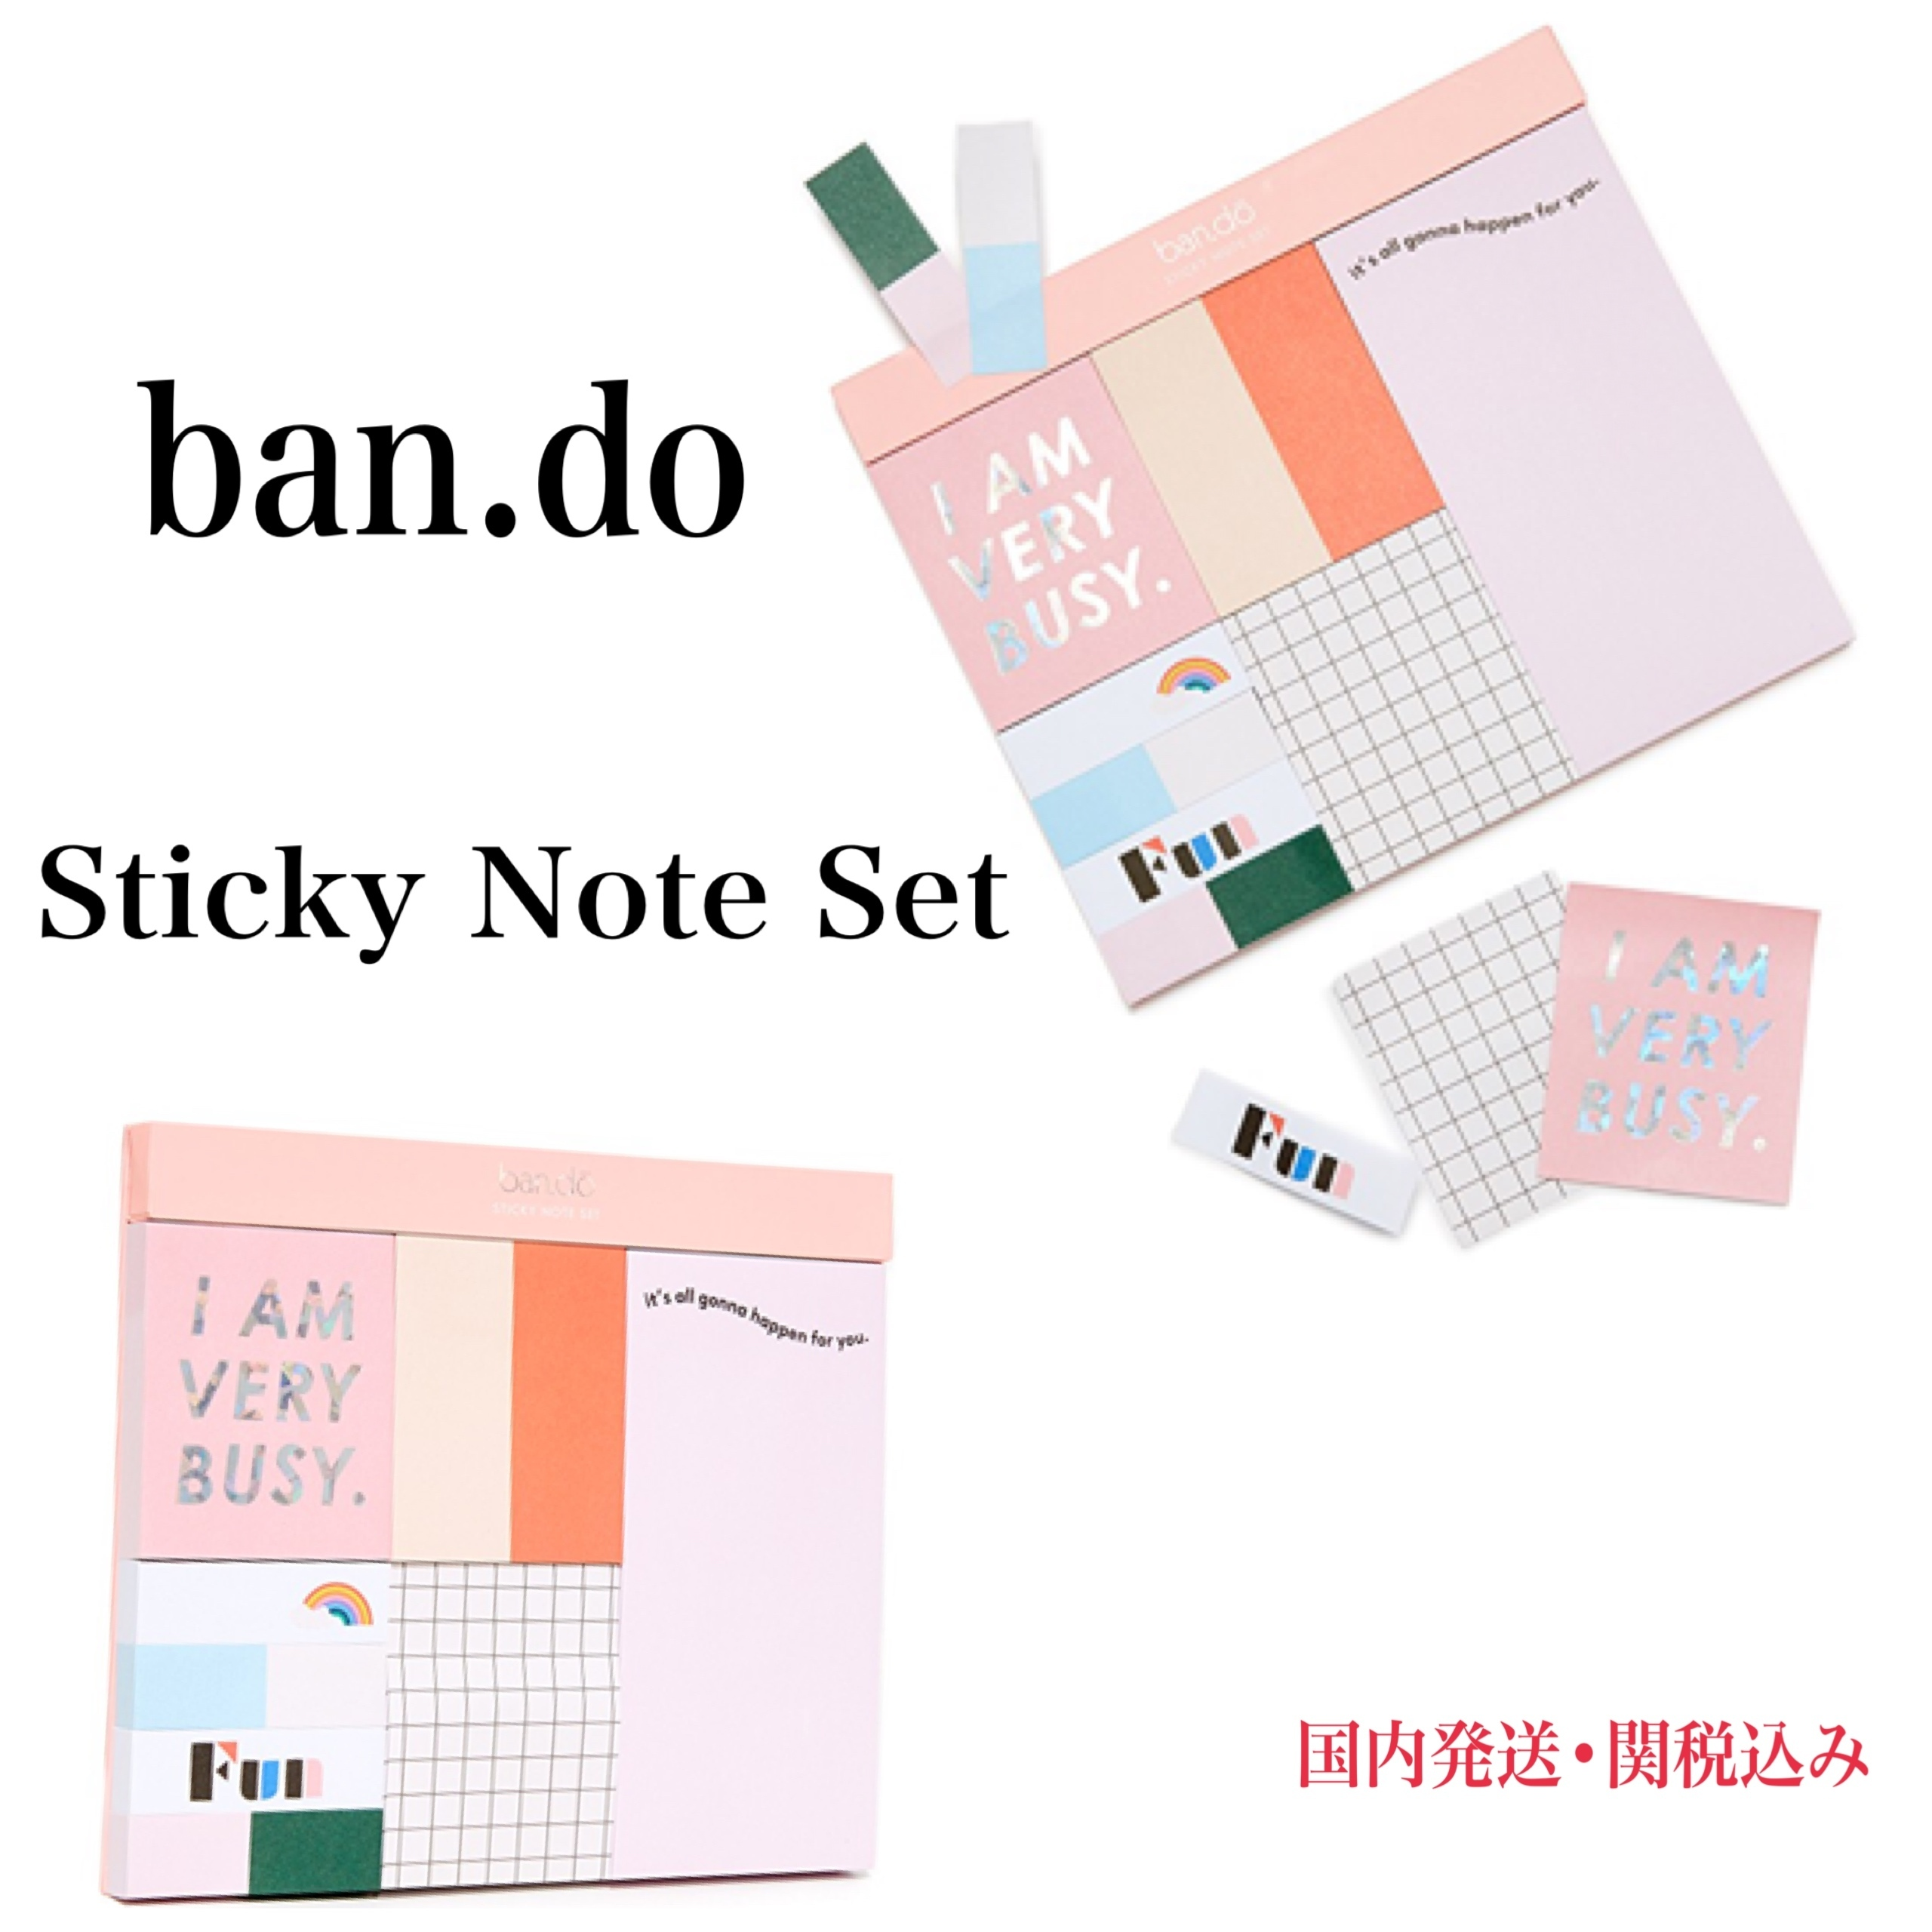 ban.do★かわいい!付箋セット★Sticky Note Set ★国内発関税込